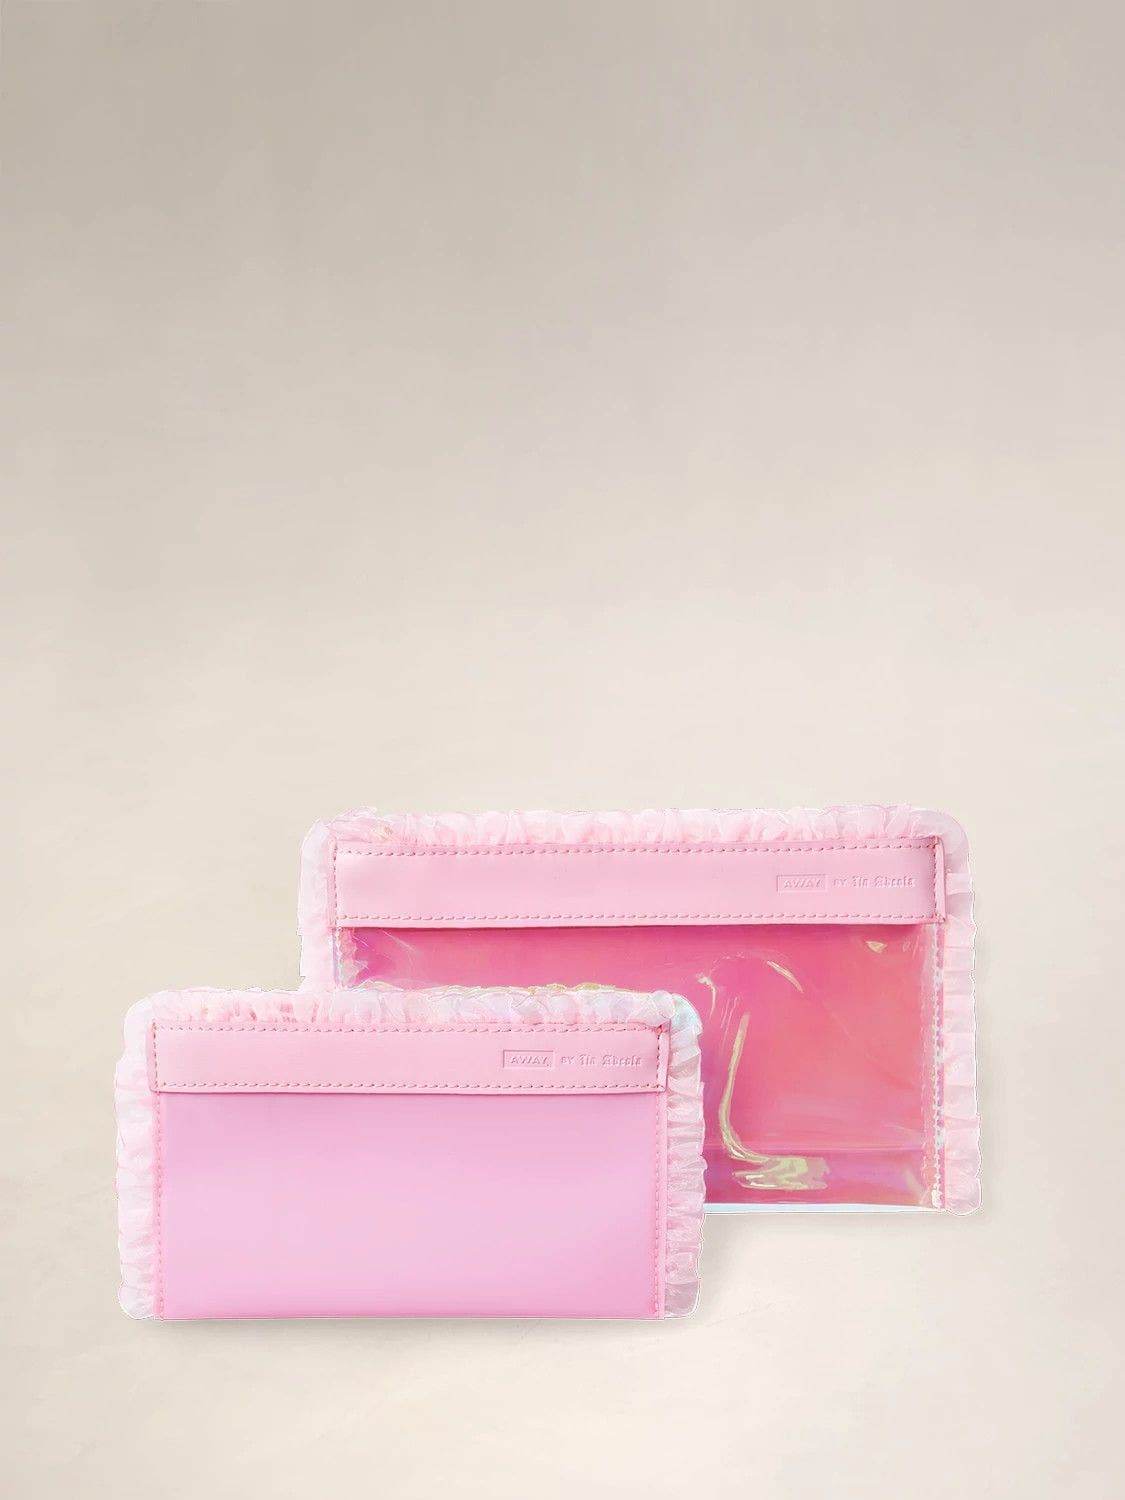 Two Travel Pouch Sets in pink with pink ruffle details.